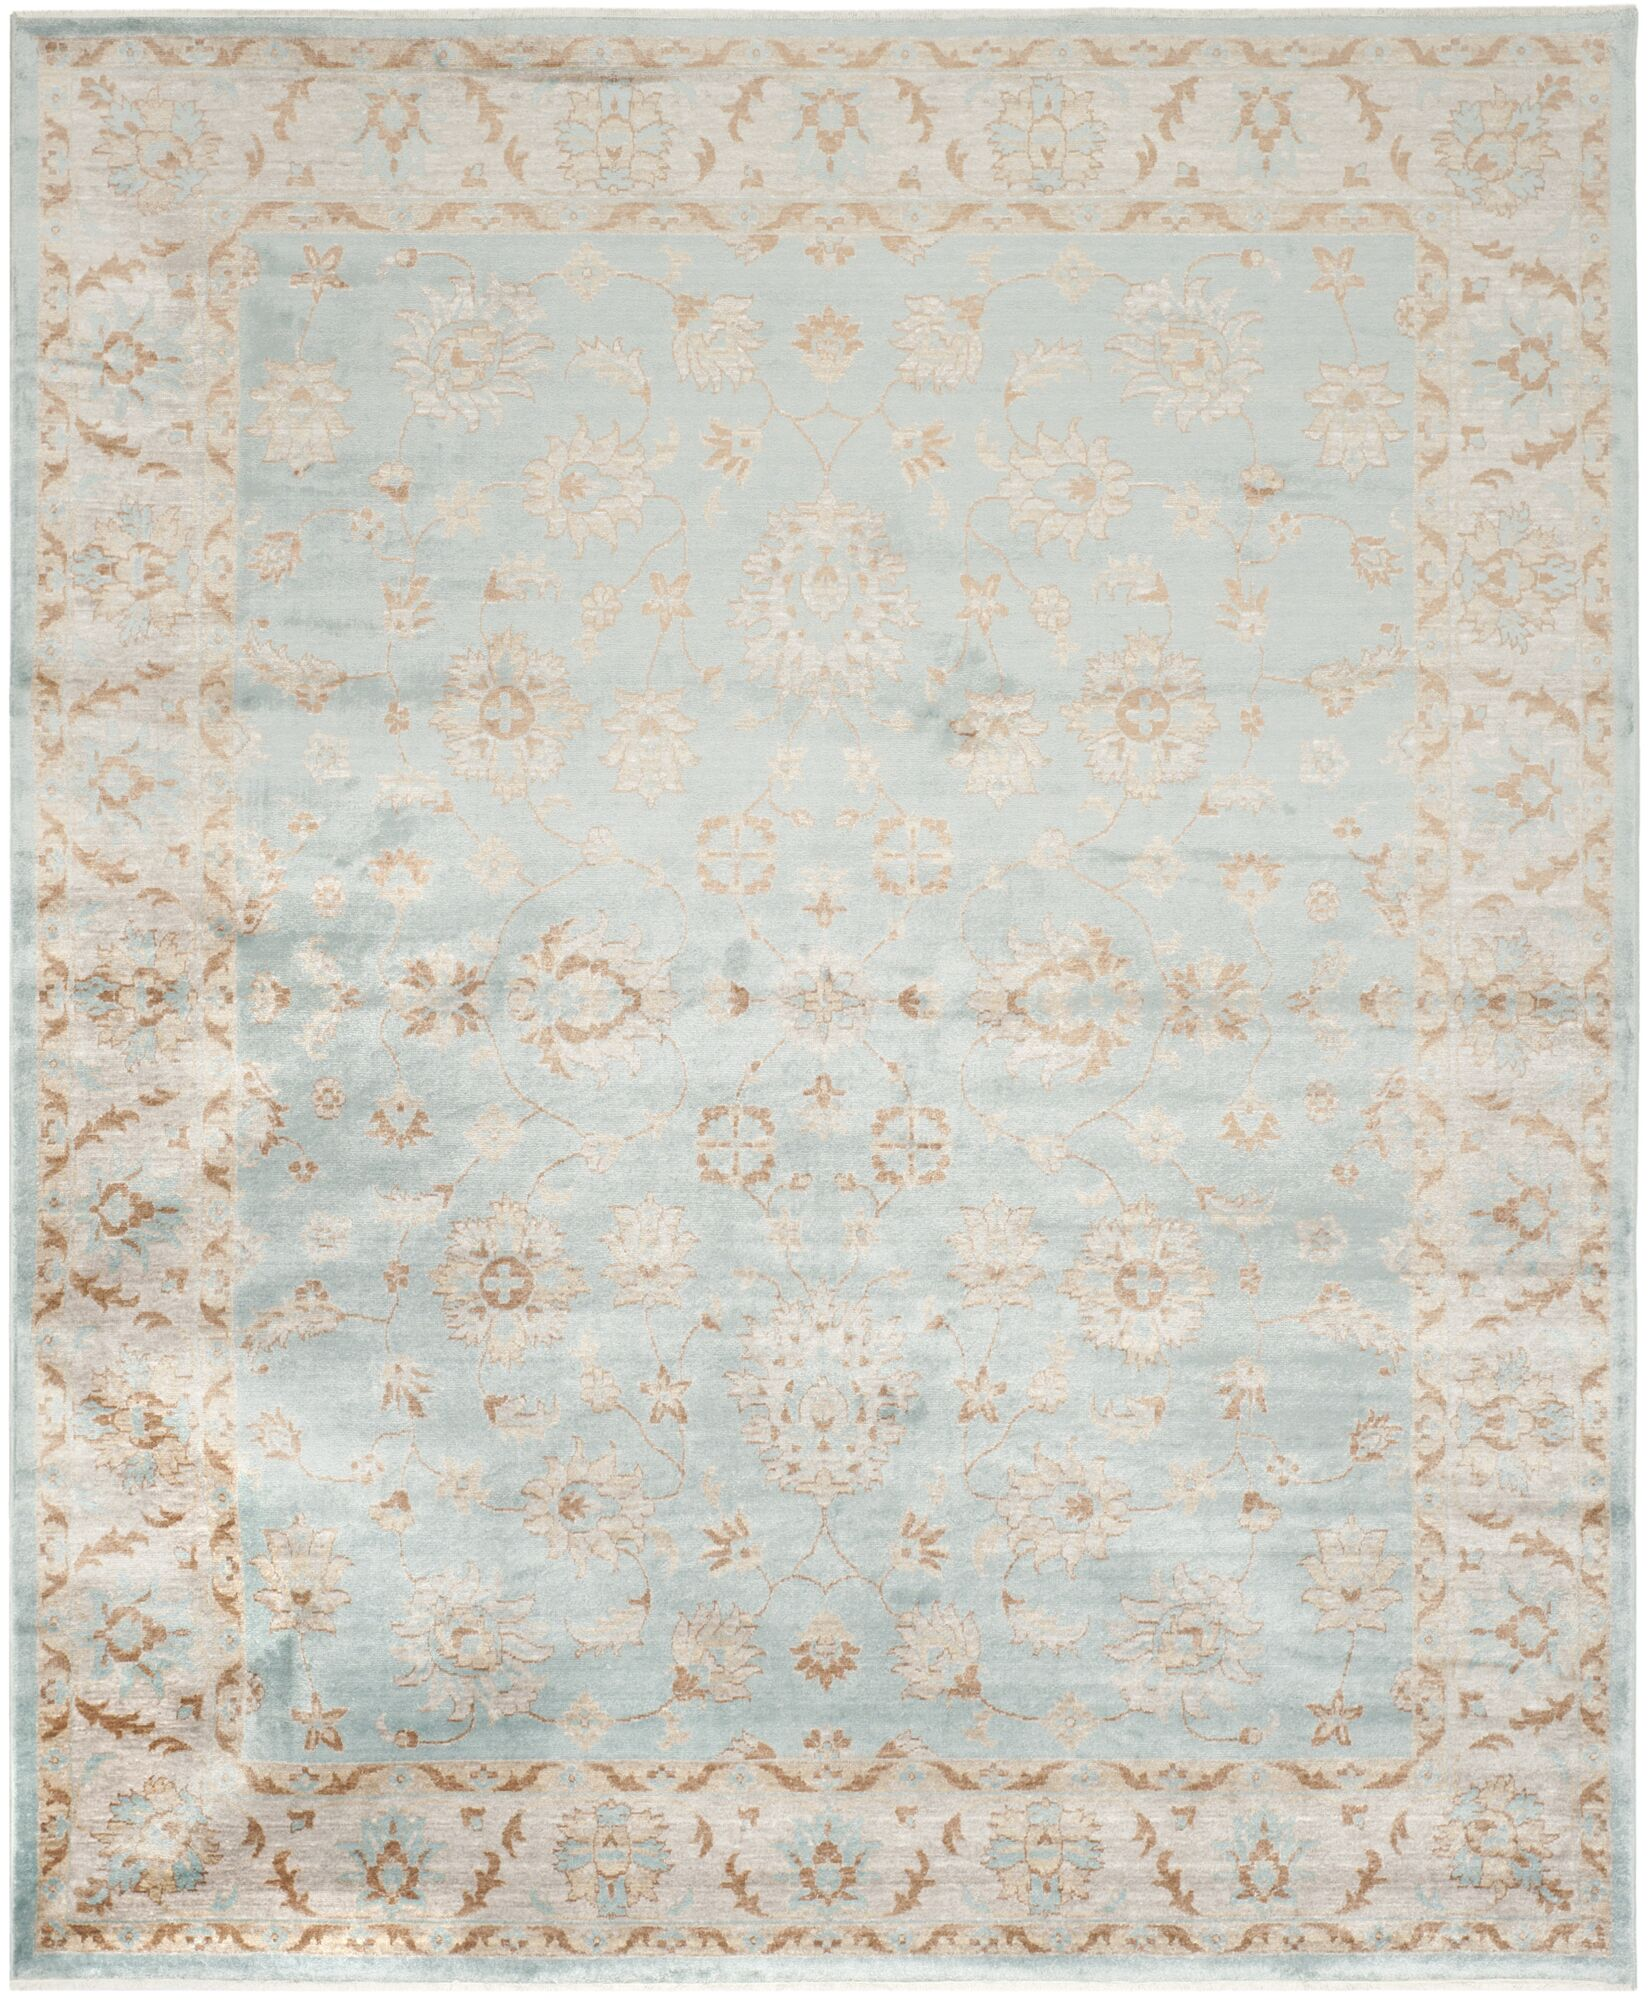 Prades Tibetan Hand Loomed Light Blue/Ivory Area Rug Rug Size: Rectangle 8' x 10'